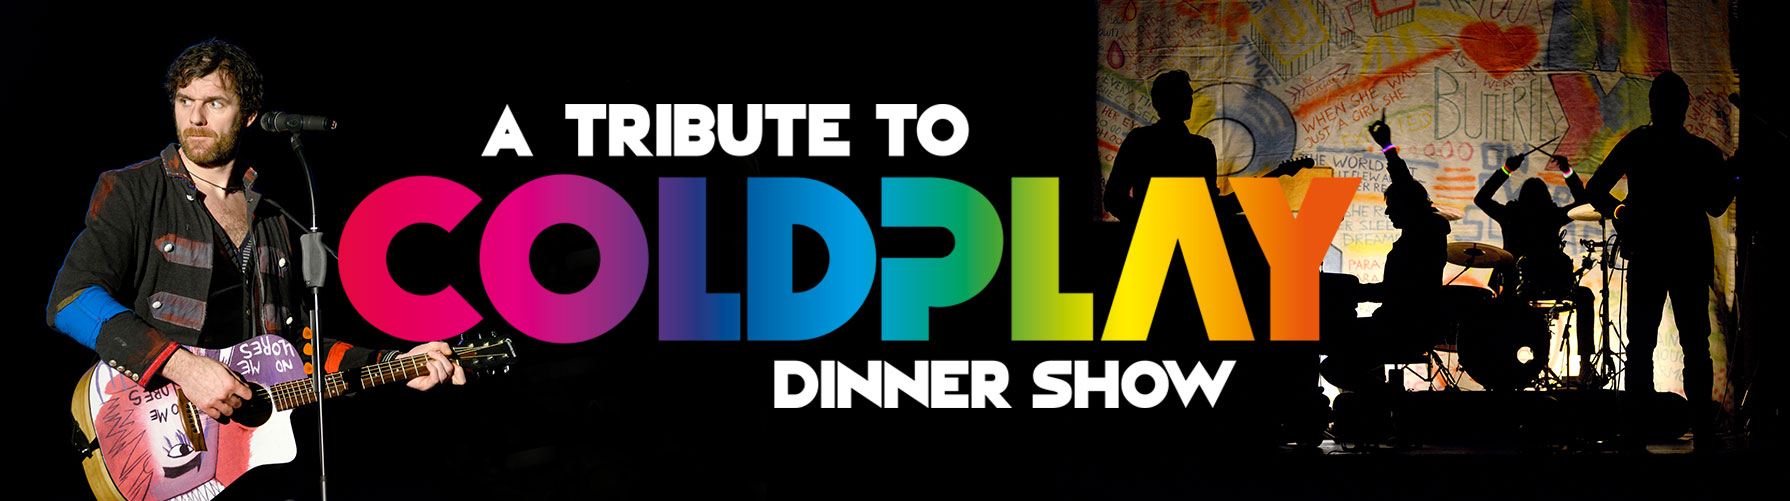 A TRIBUTE TO COLDPLAY - Ticket kaufen - Termine - WORLD of DINNER